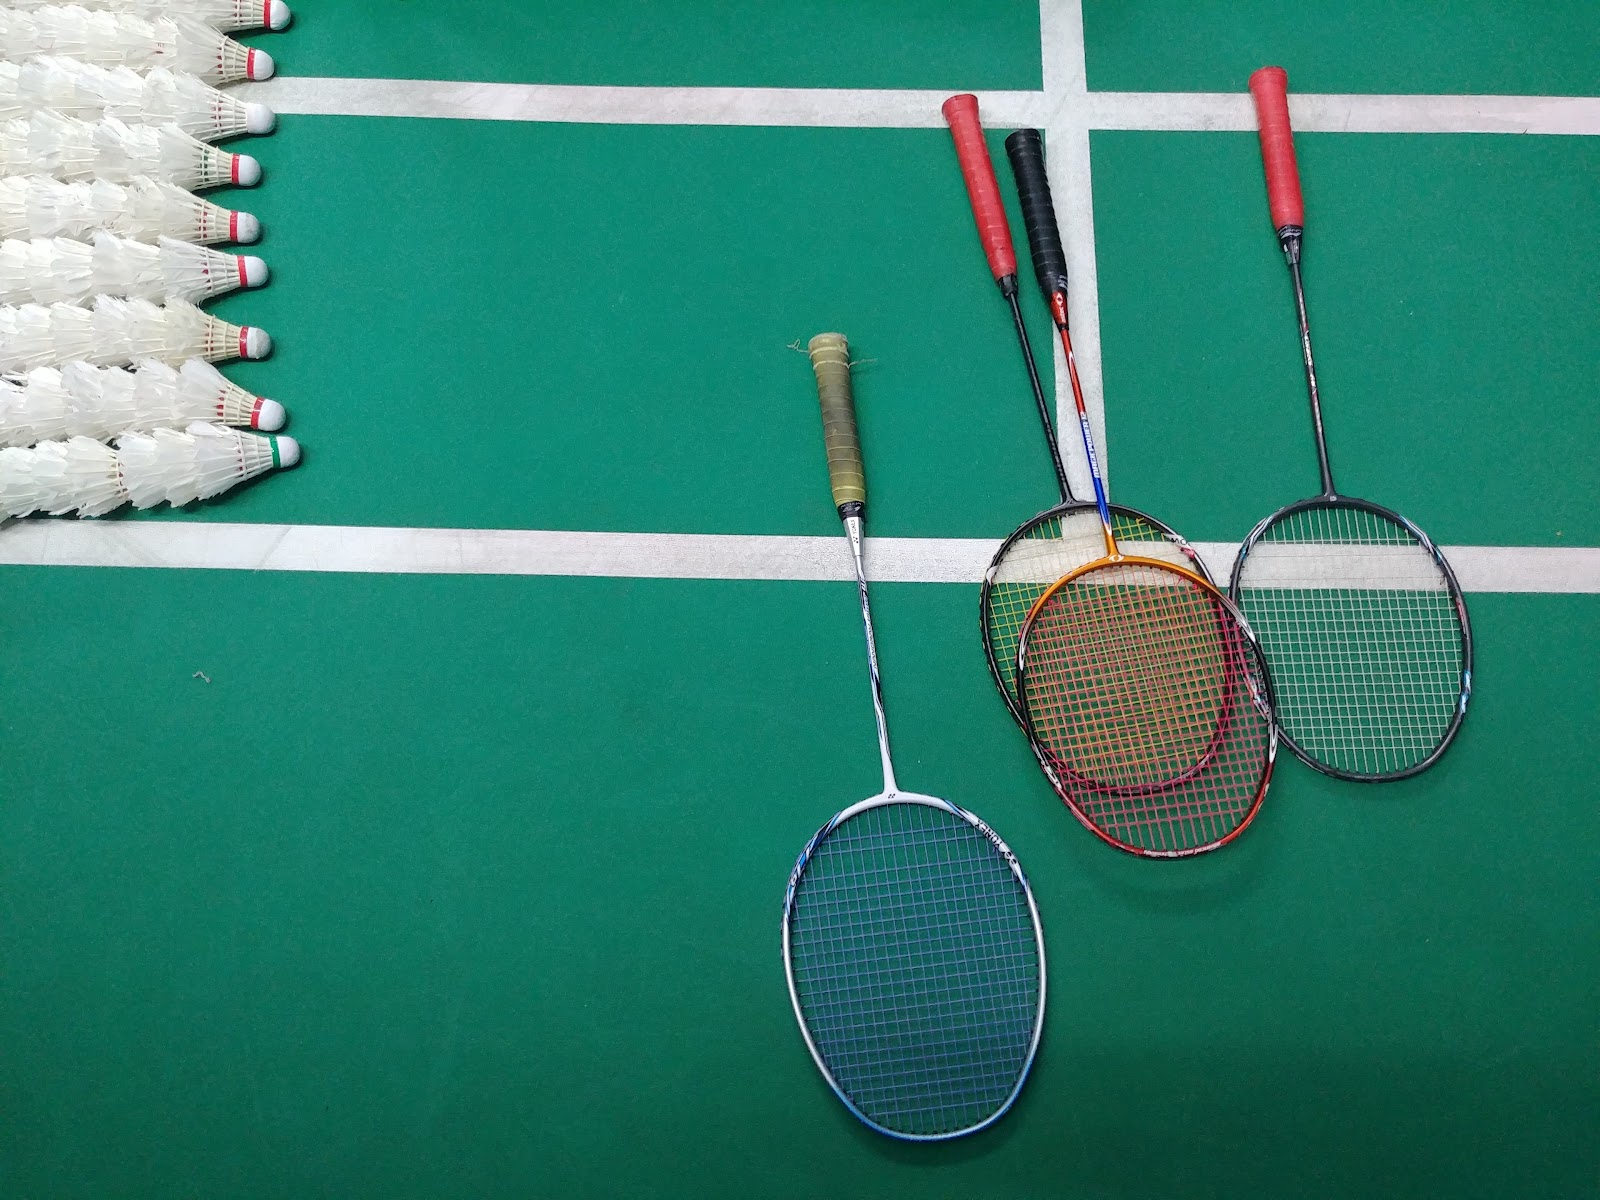 This is a shot of dozens of shuttlecocks and several badminton rackets laying on a green surfaced badminton court.